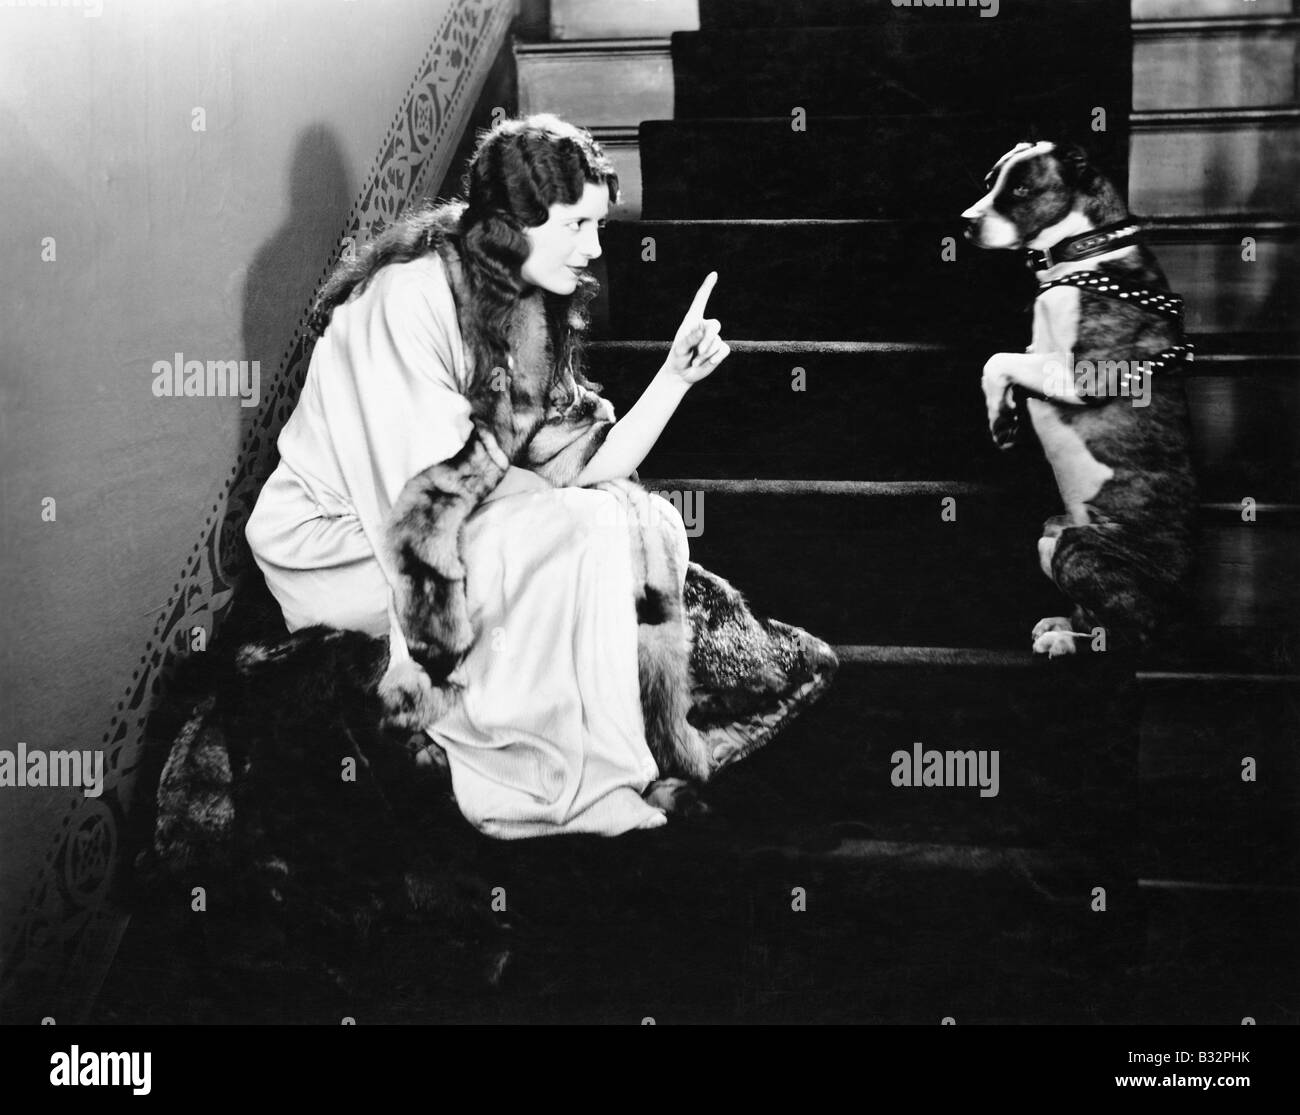 Woman scolding dog on stairs - Stock Image